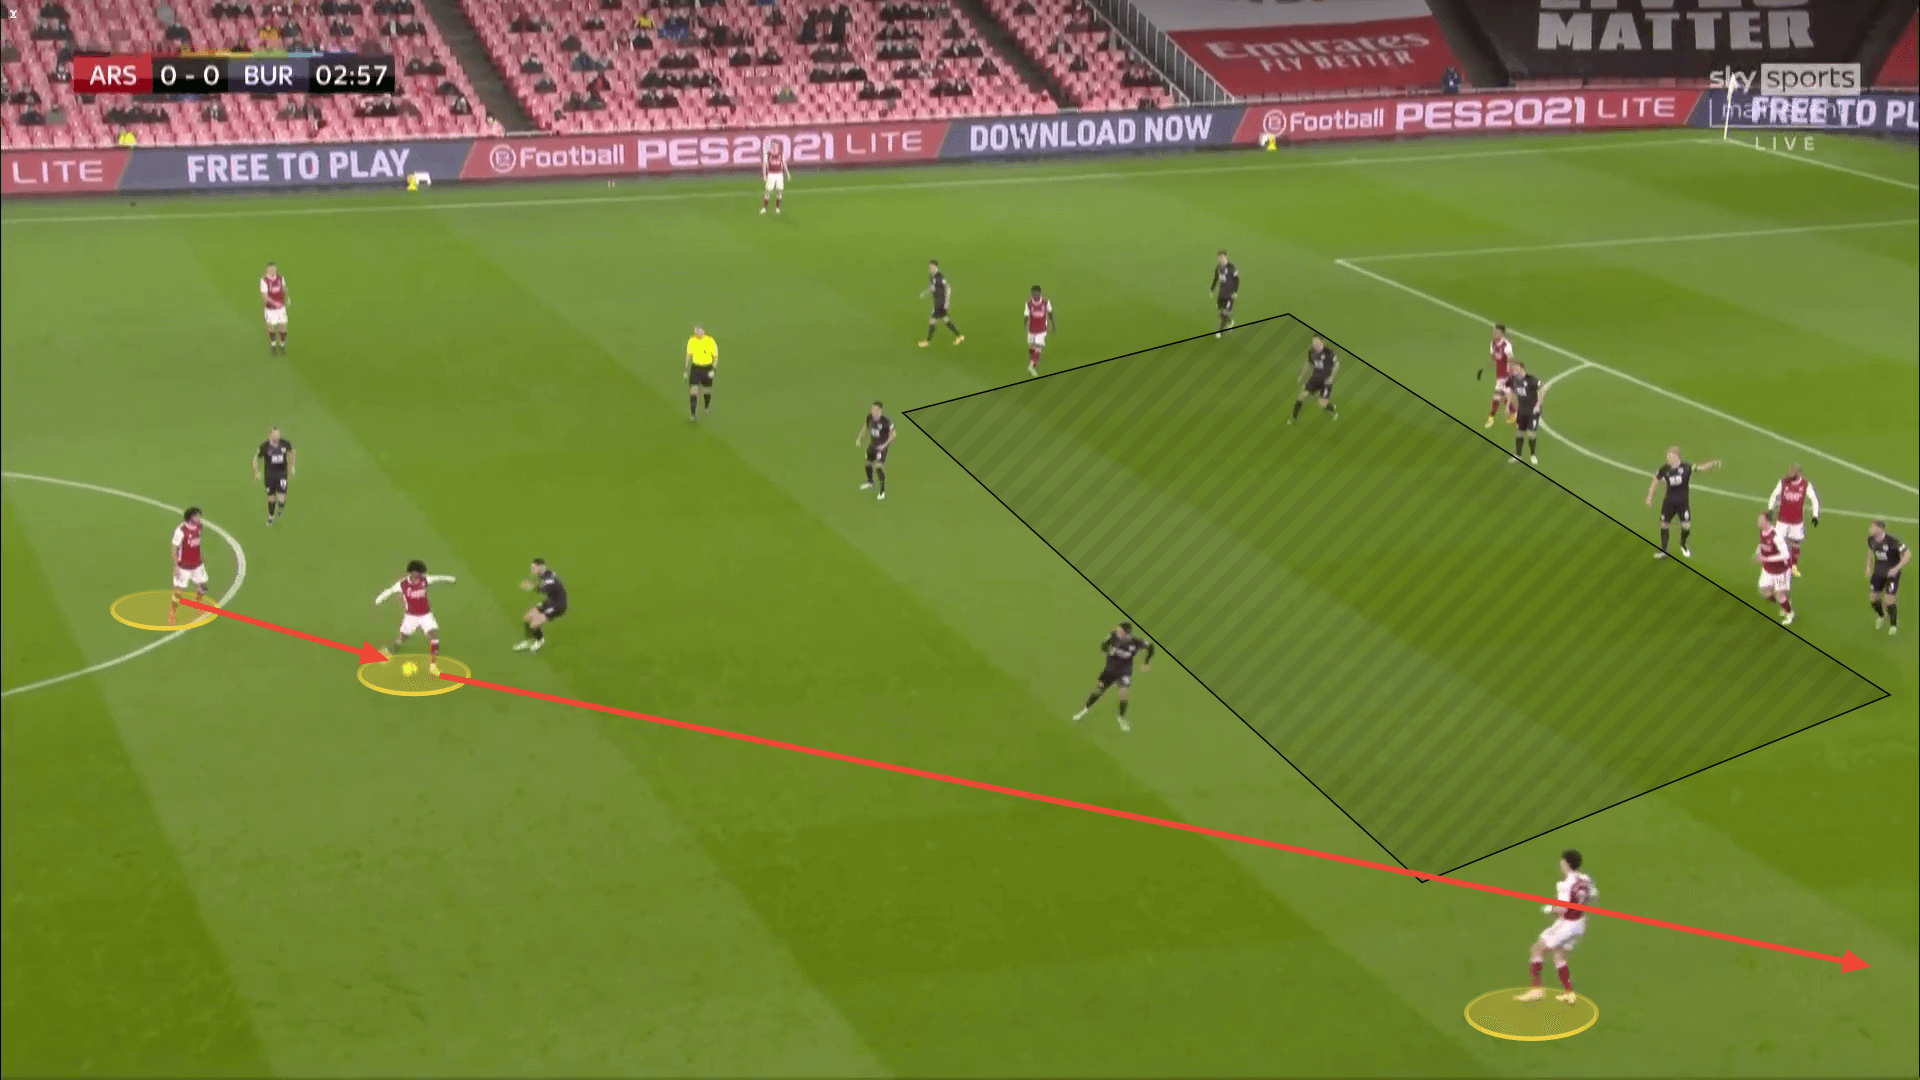 The 5 tactical solutions that will save Arteta's job at Arsenal - tactical analysis